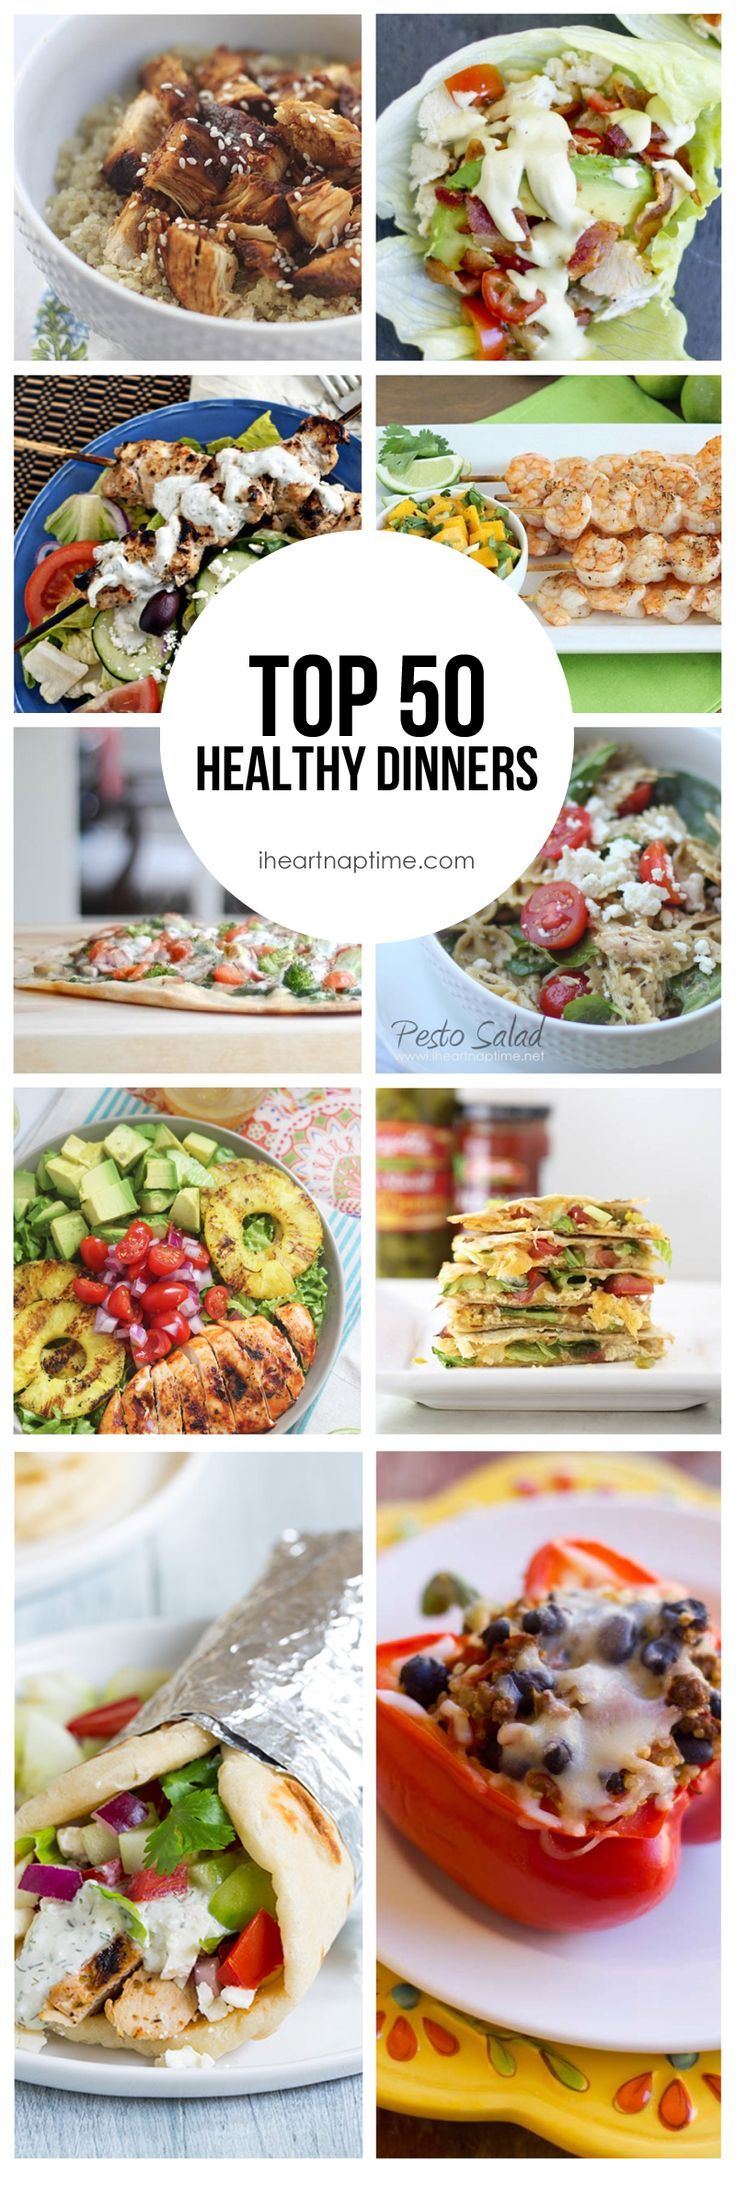 Top 50 Healthy Dinners -so many delicious recipes to try! Great healthy meal…